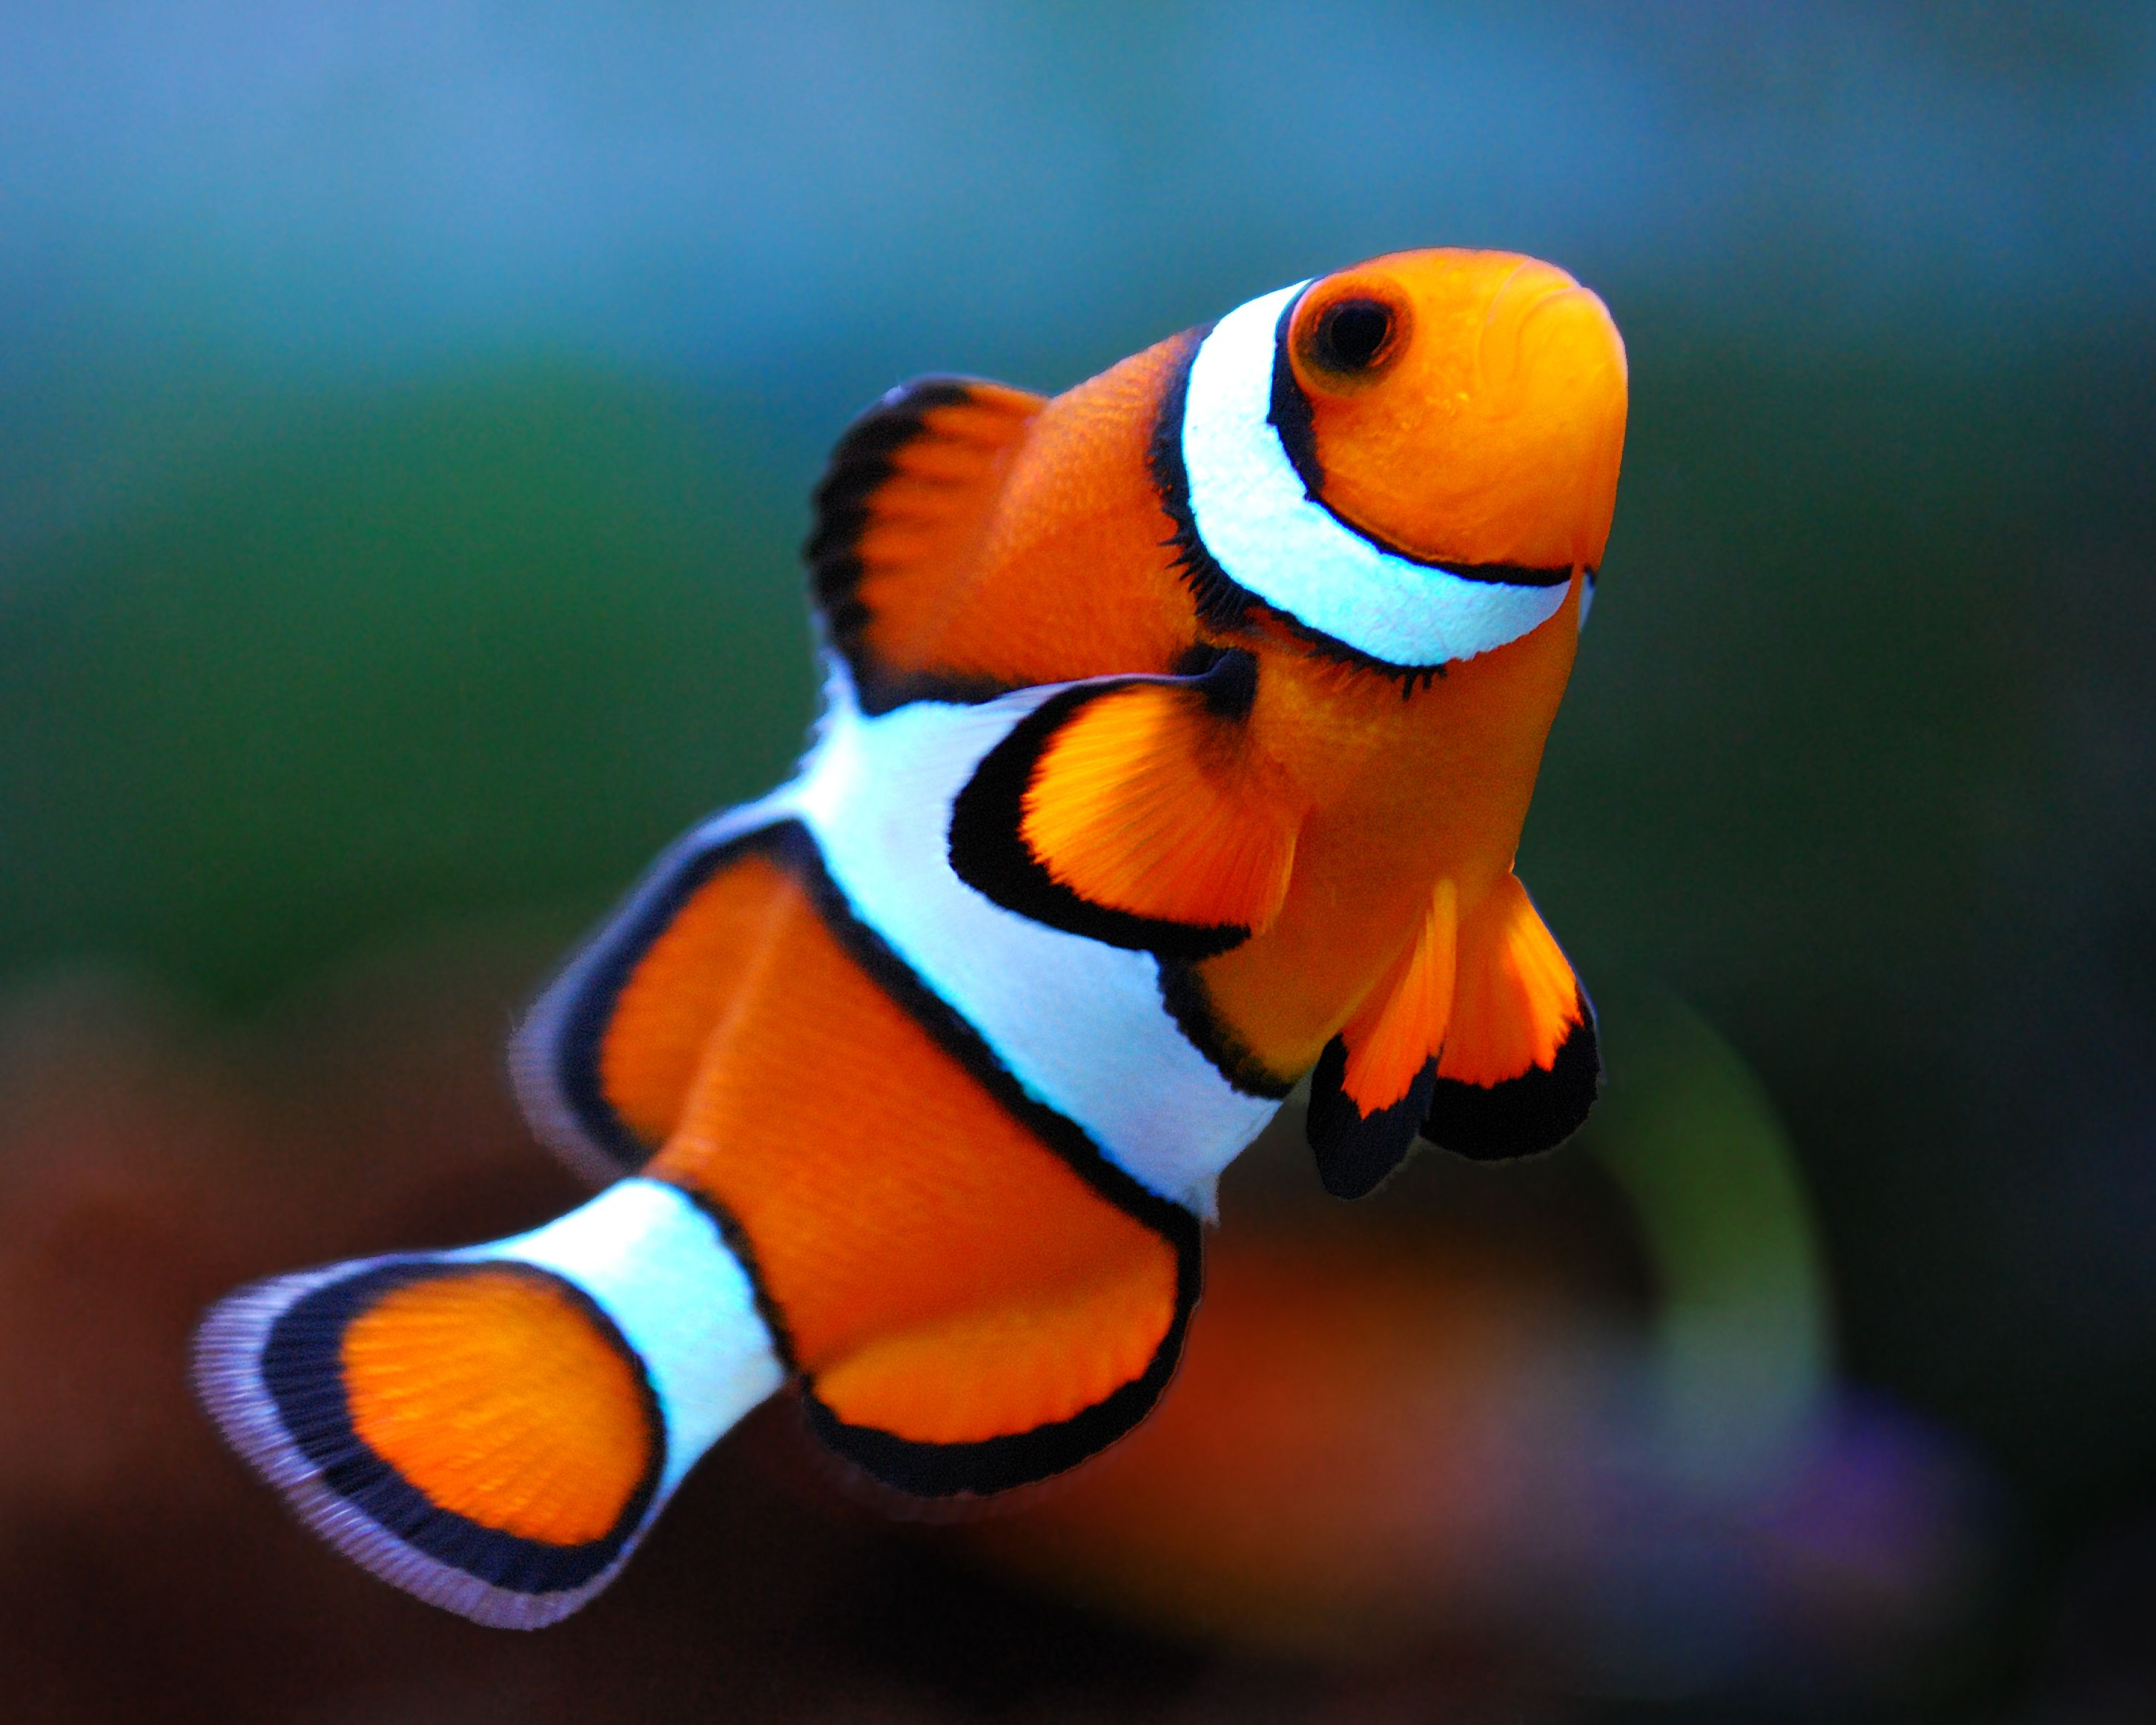 Clownfish [OC] [2908x2326] (With images) | Clown fish